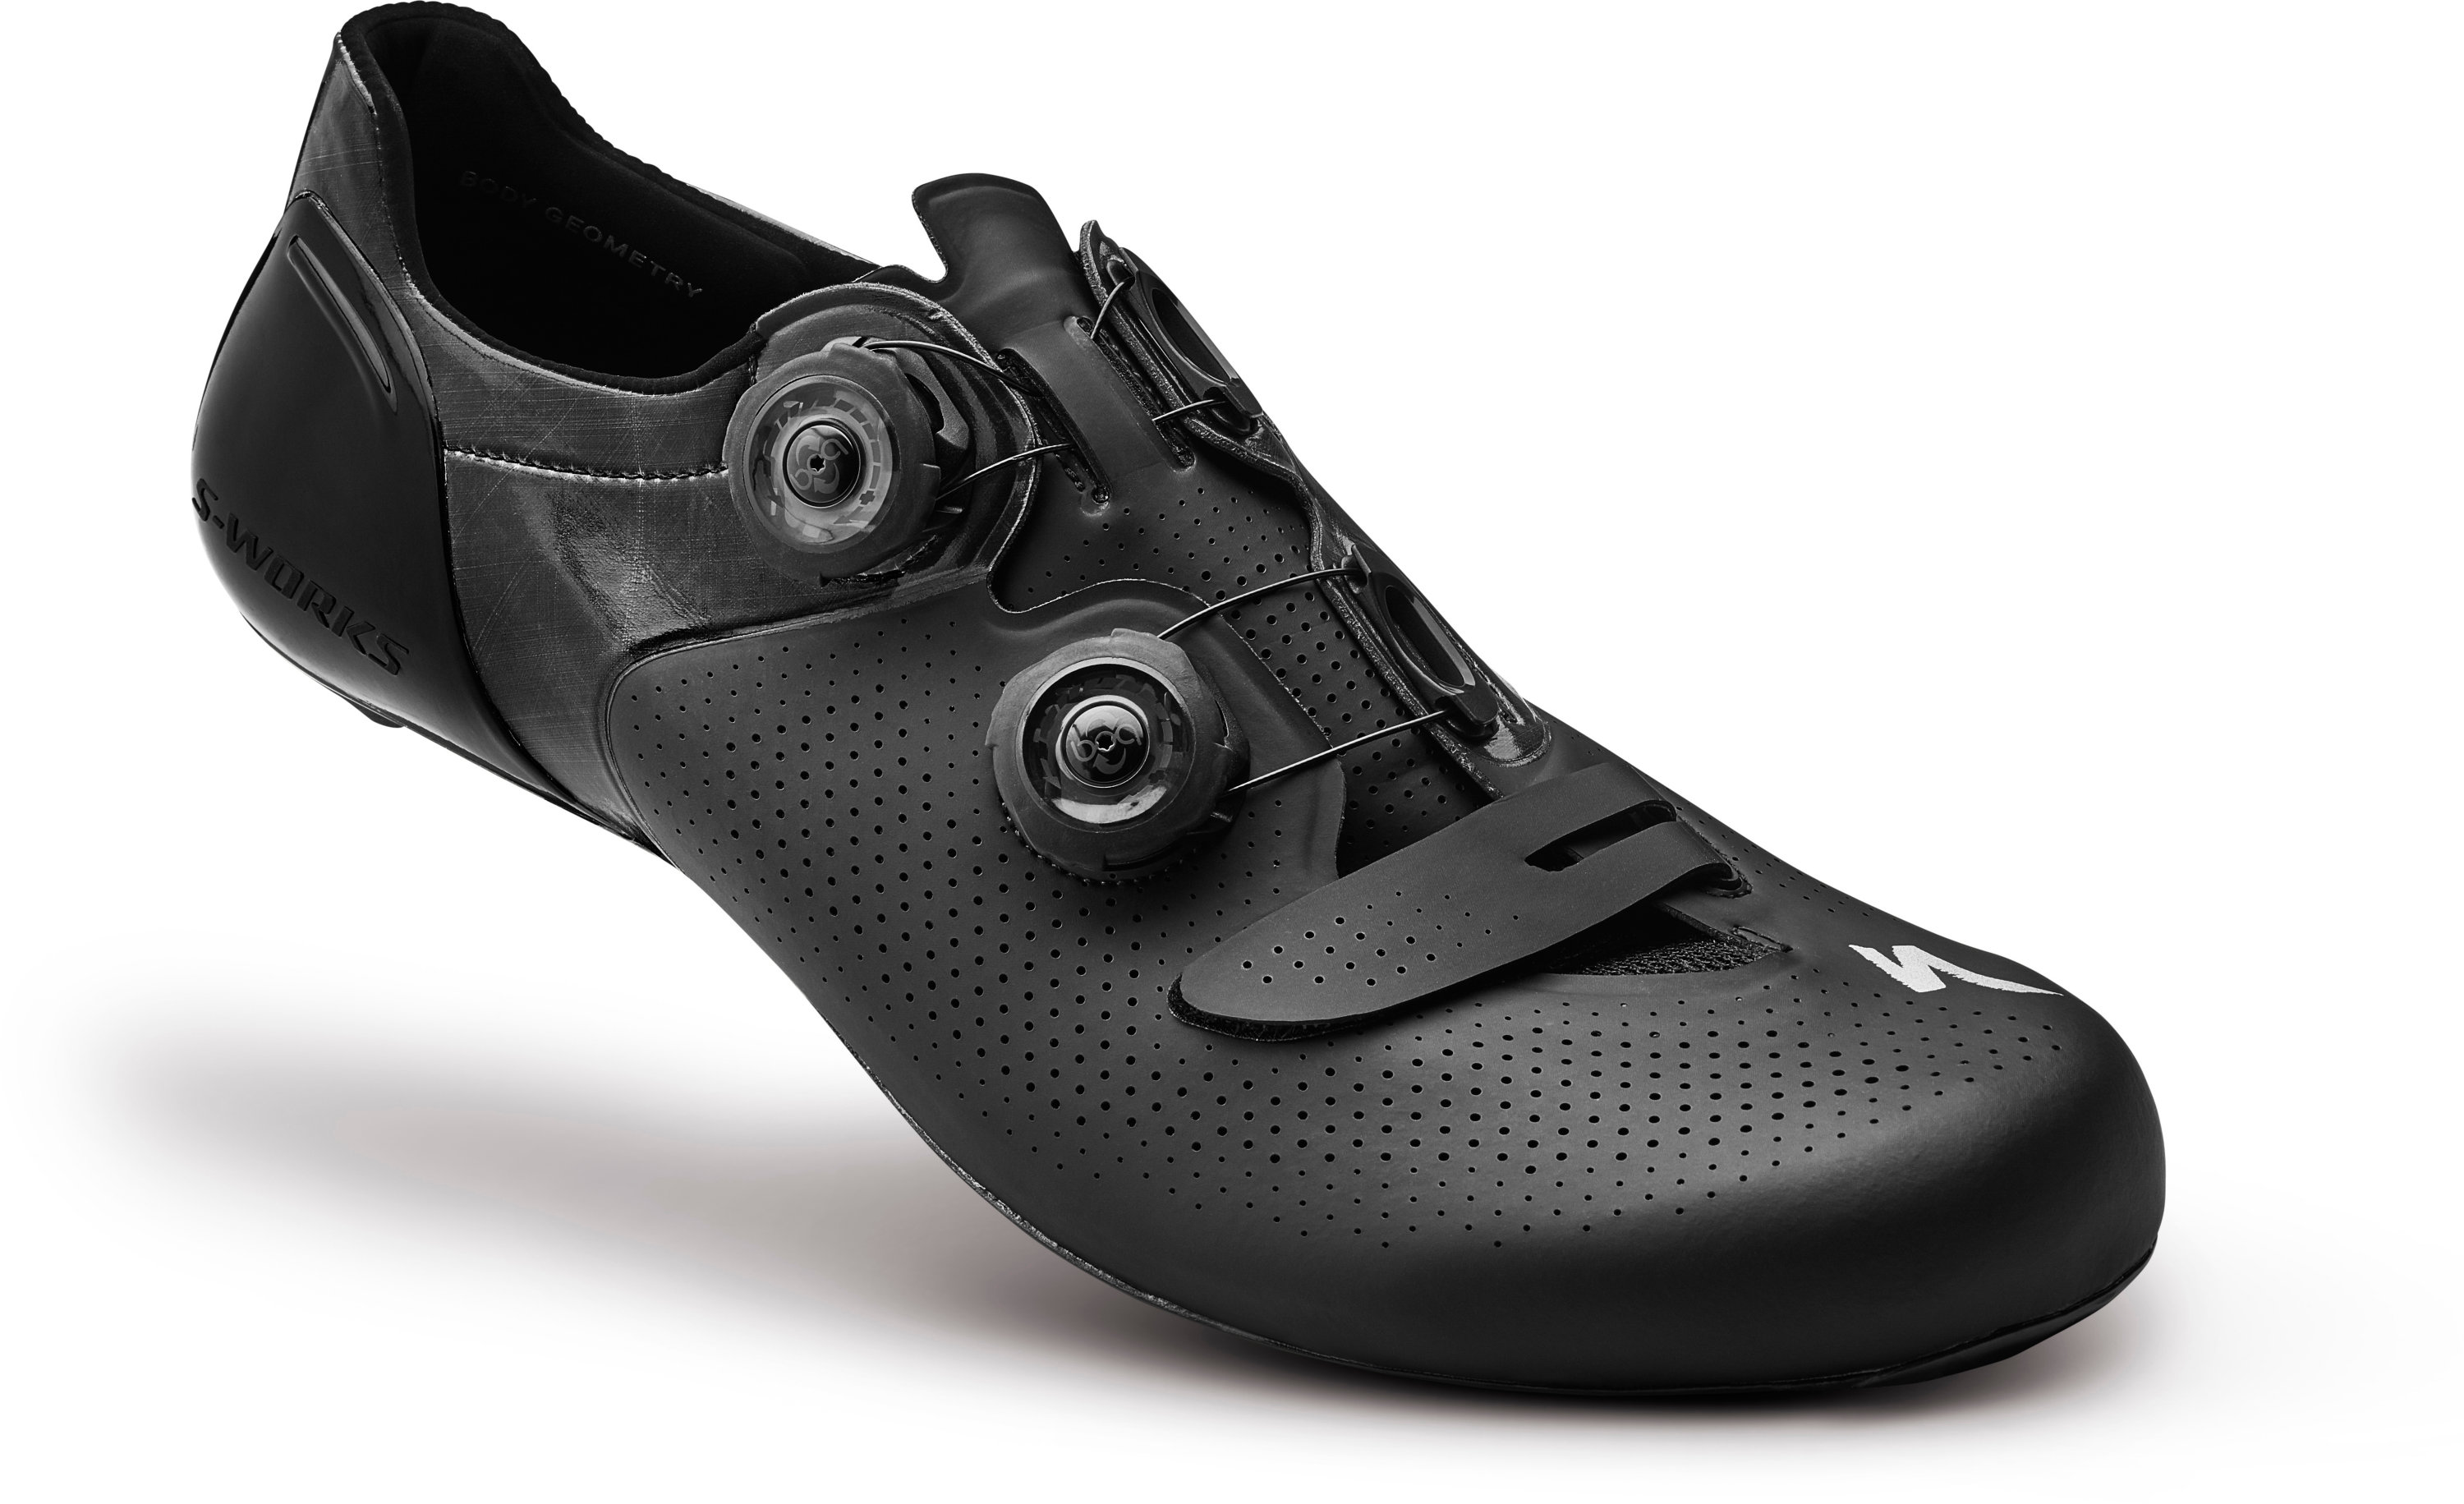 SPECIALIZED SW 6 RD SHOE BLK WIDE 41/8M/9.5W - Bikedreams & Dustbikes